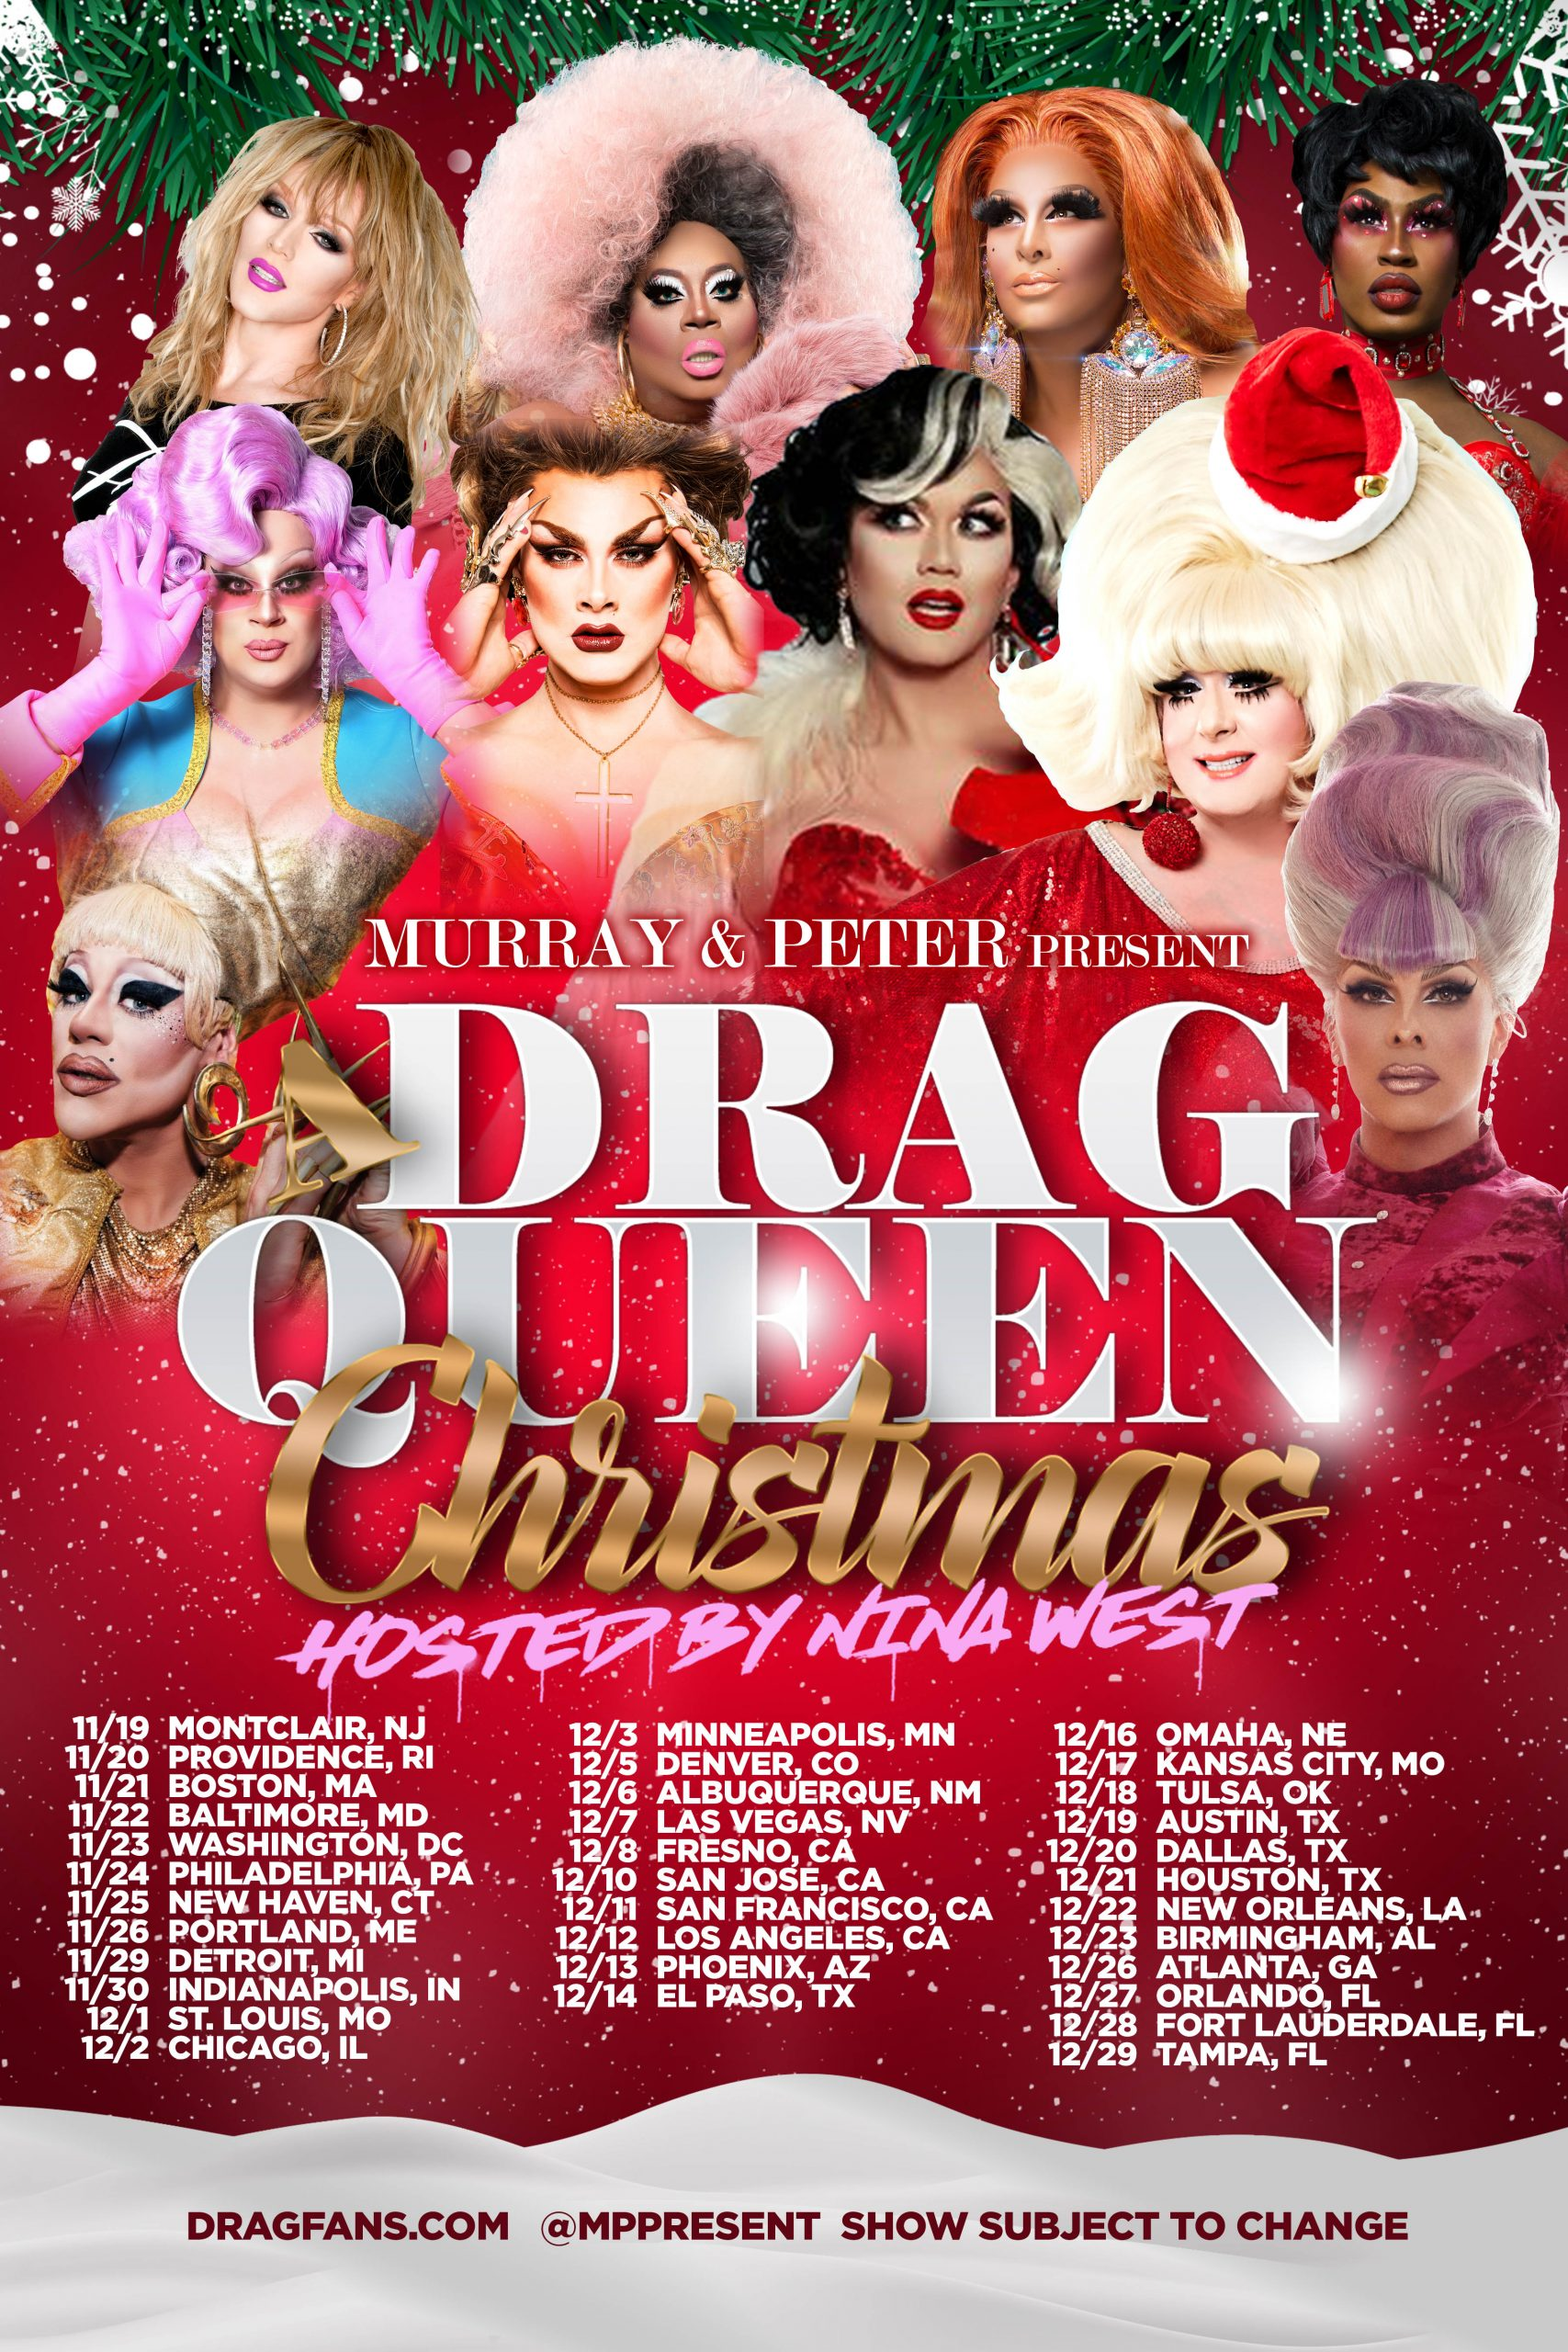 Drag Queen Christmas Ad Mat with Tour Dates